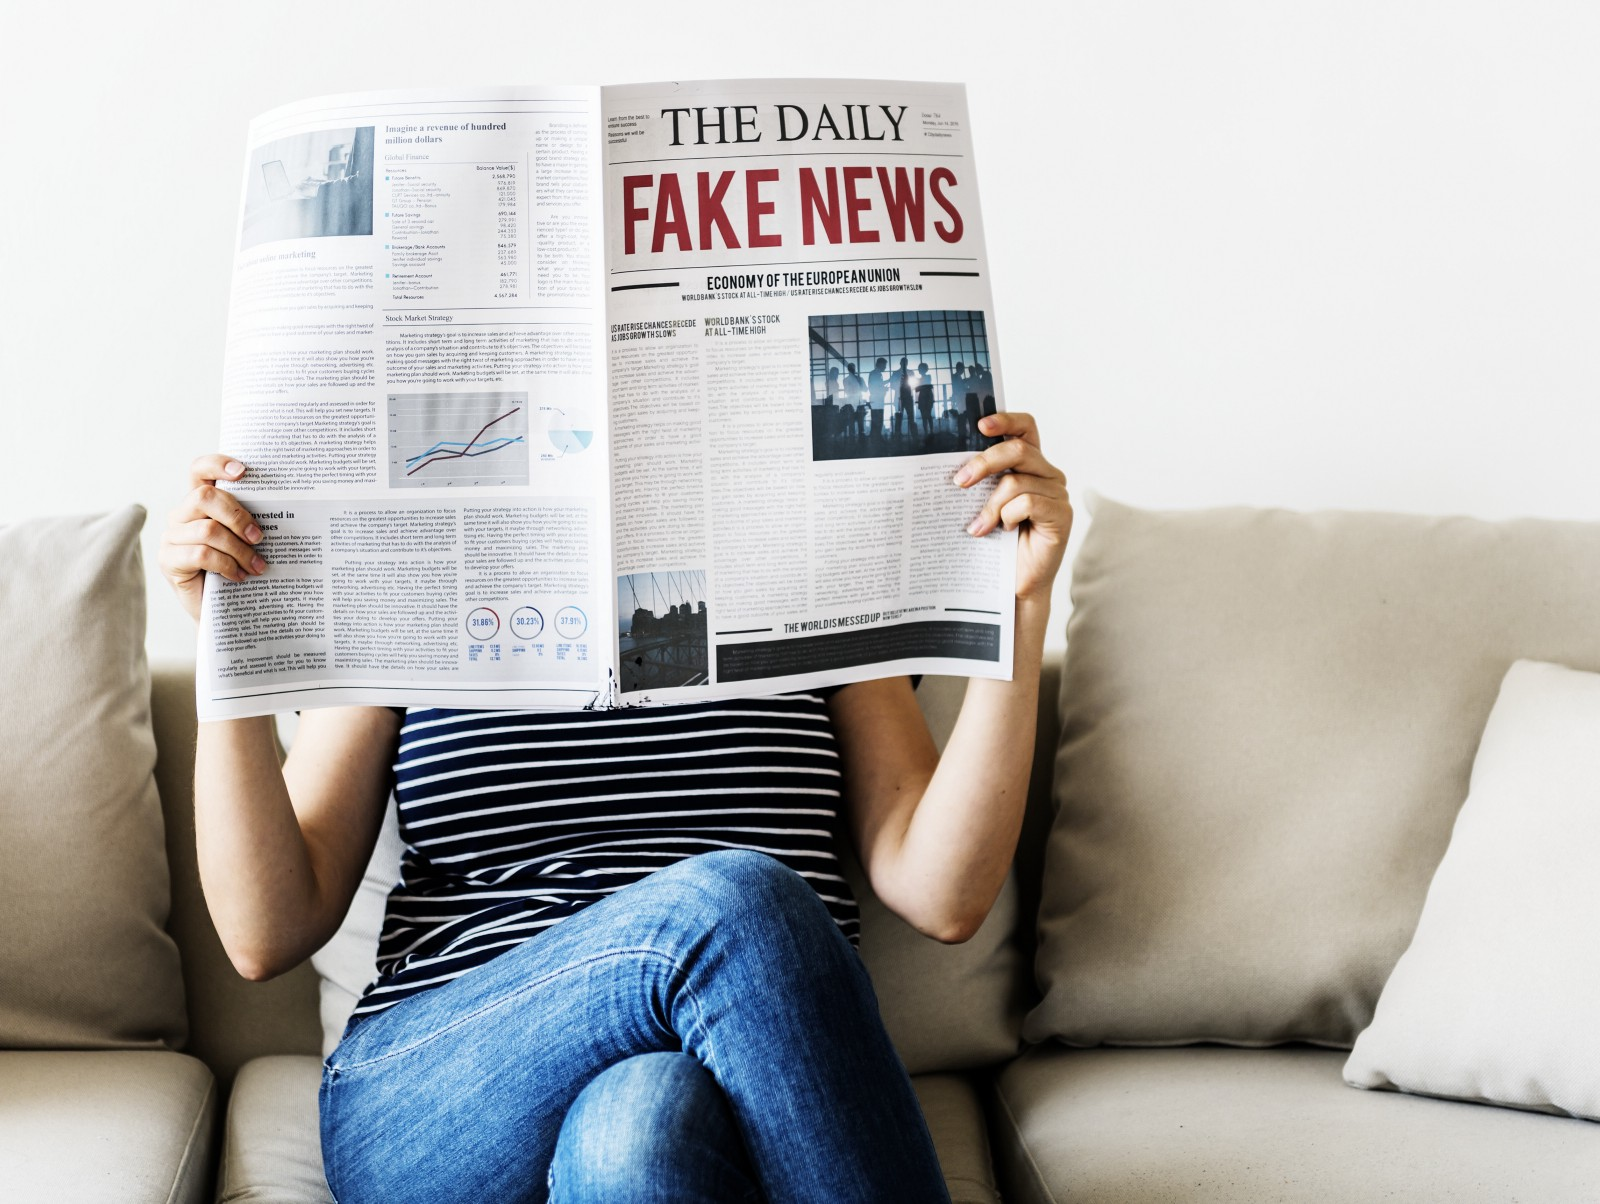 /fake-news-and-the-detection-methods-from-psychology-to-machine-learning-part-1-facbadac3e85 feature image